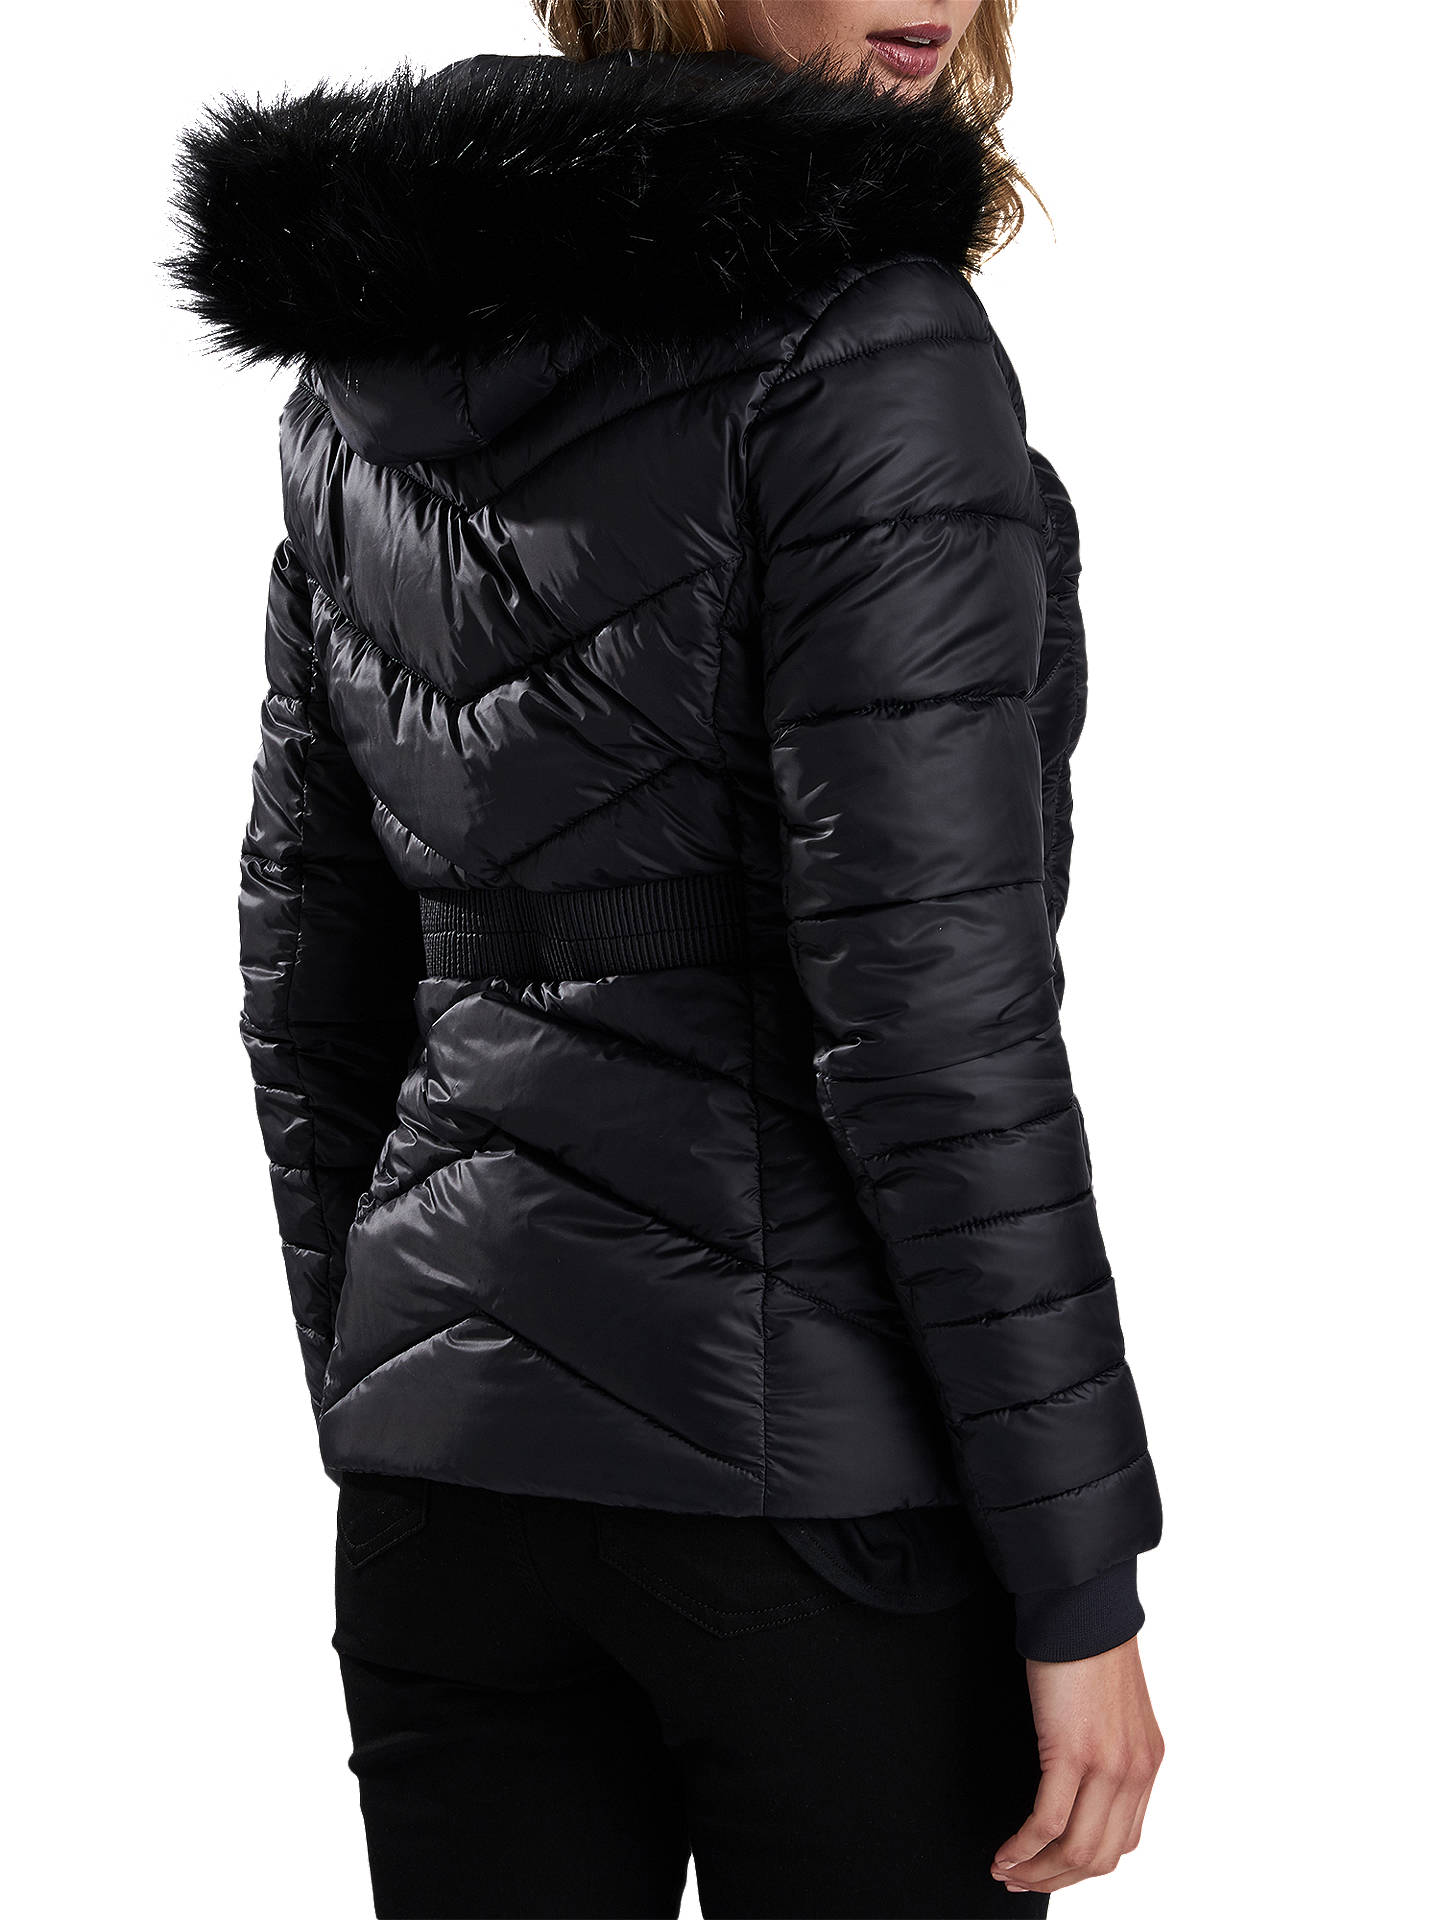 BuyBarbour International Turbo Quilted Hooded Jacket, Black, 8 Online at johnlewis.com